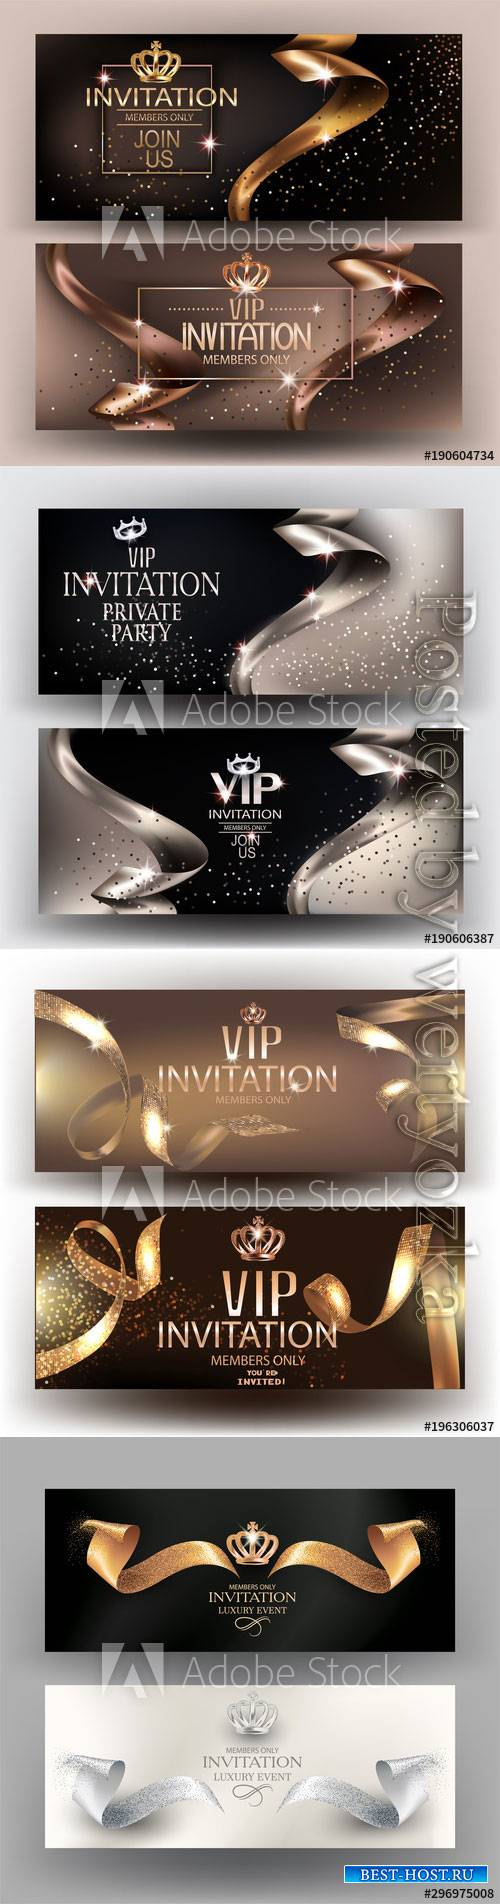 Vip elegant vector invitation cards with gold beautiful ribbons and vintage ...